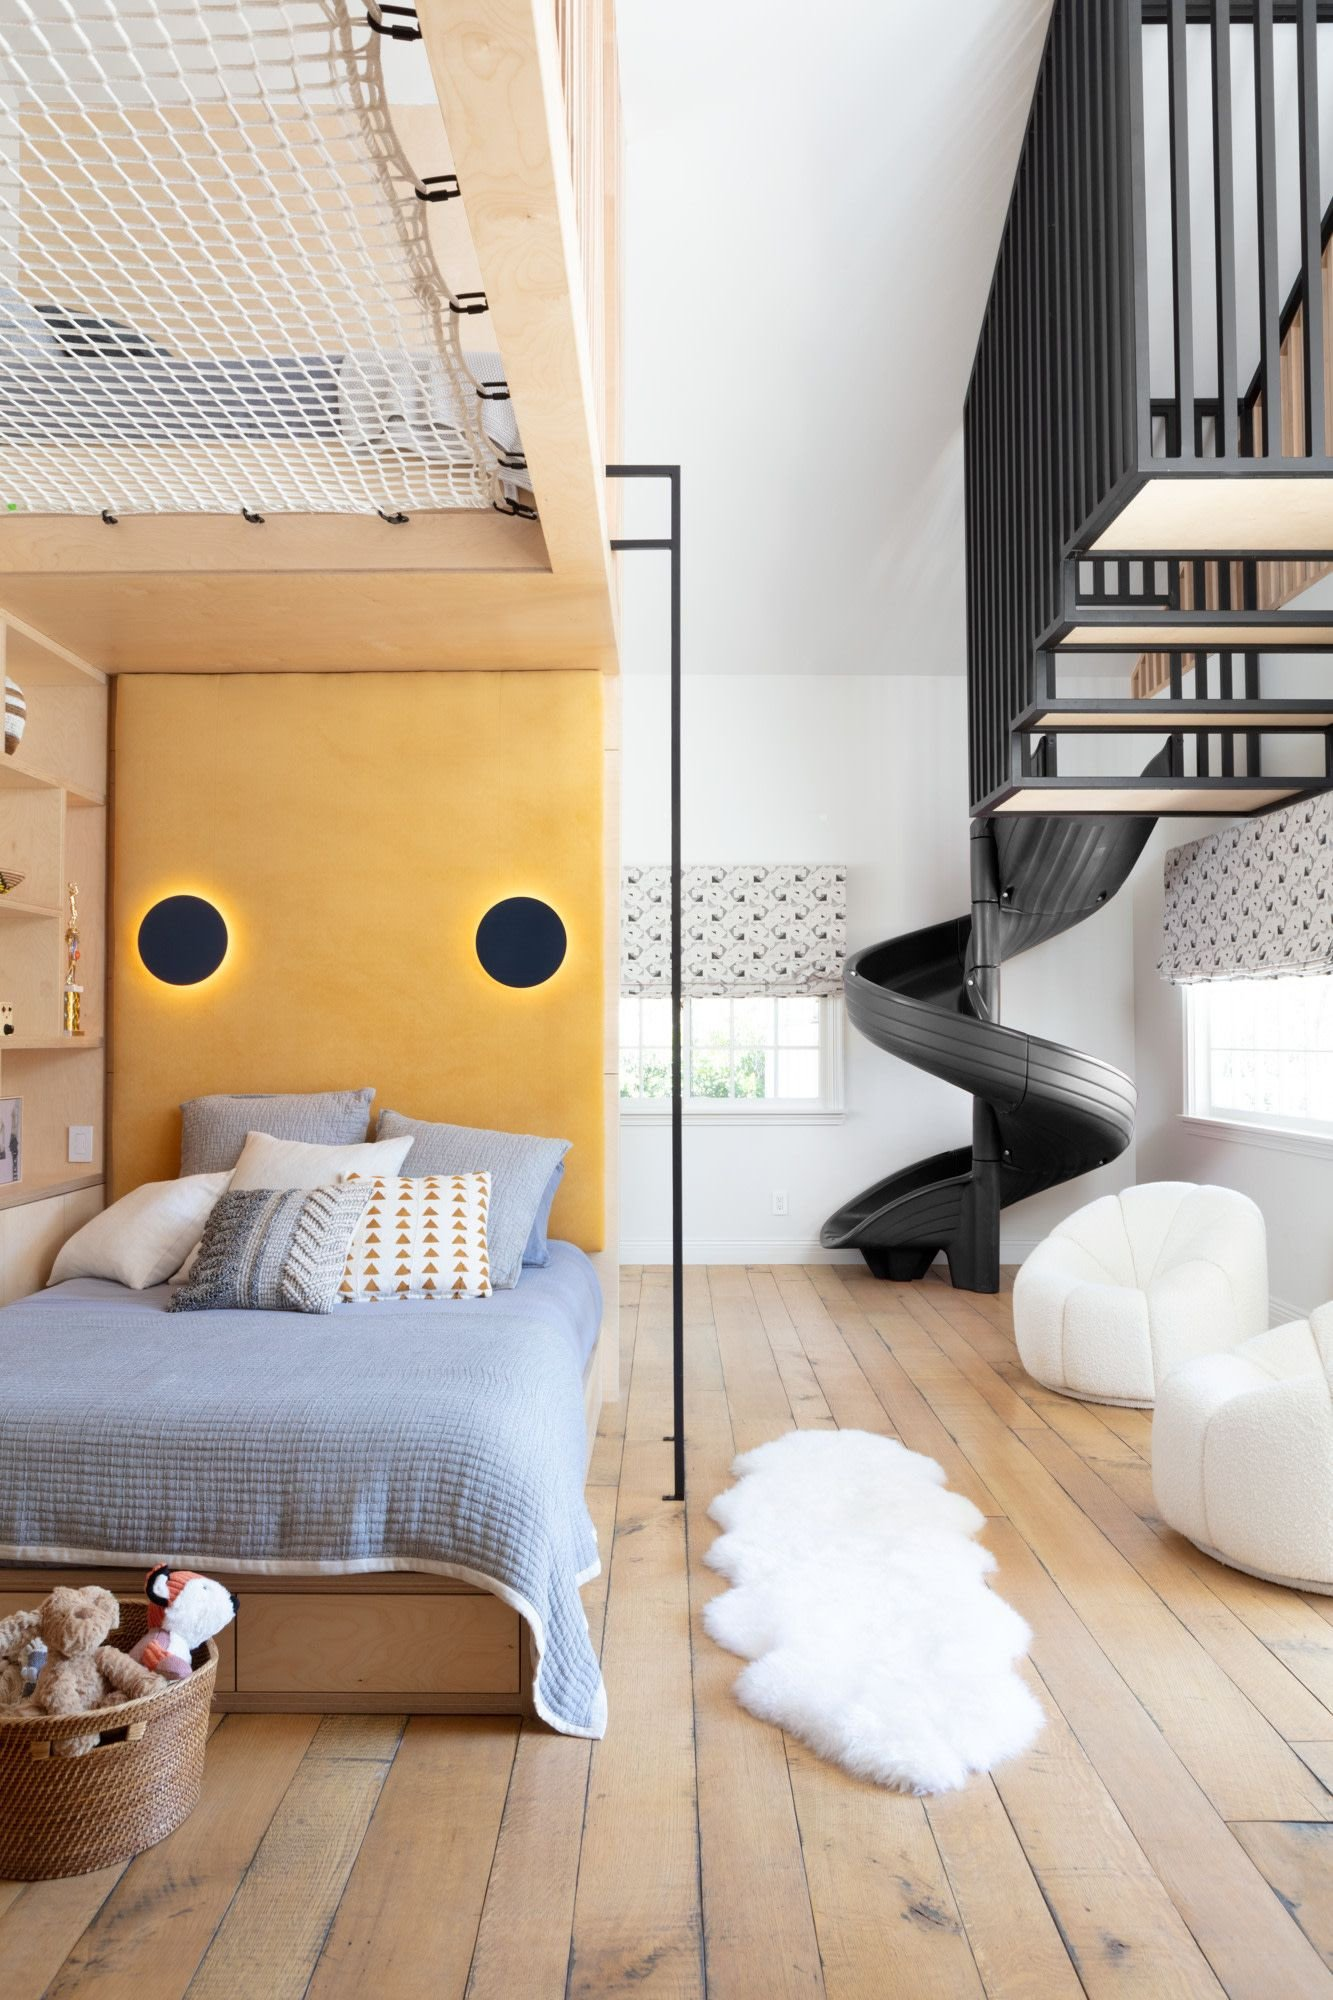 Childrens Bedroom Ideas for Small Bedrooms Luxury 55 Kids Room Design Ideas Cool Kids Bedroom Decor and Style